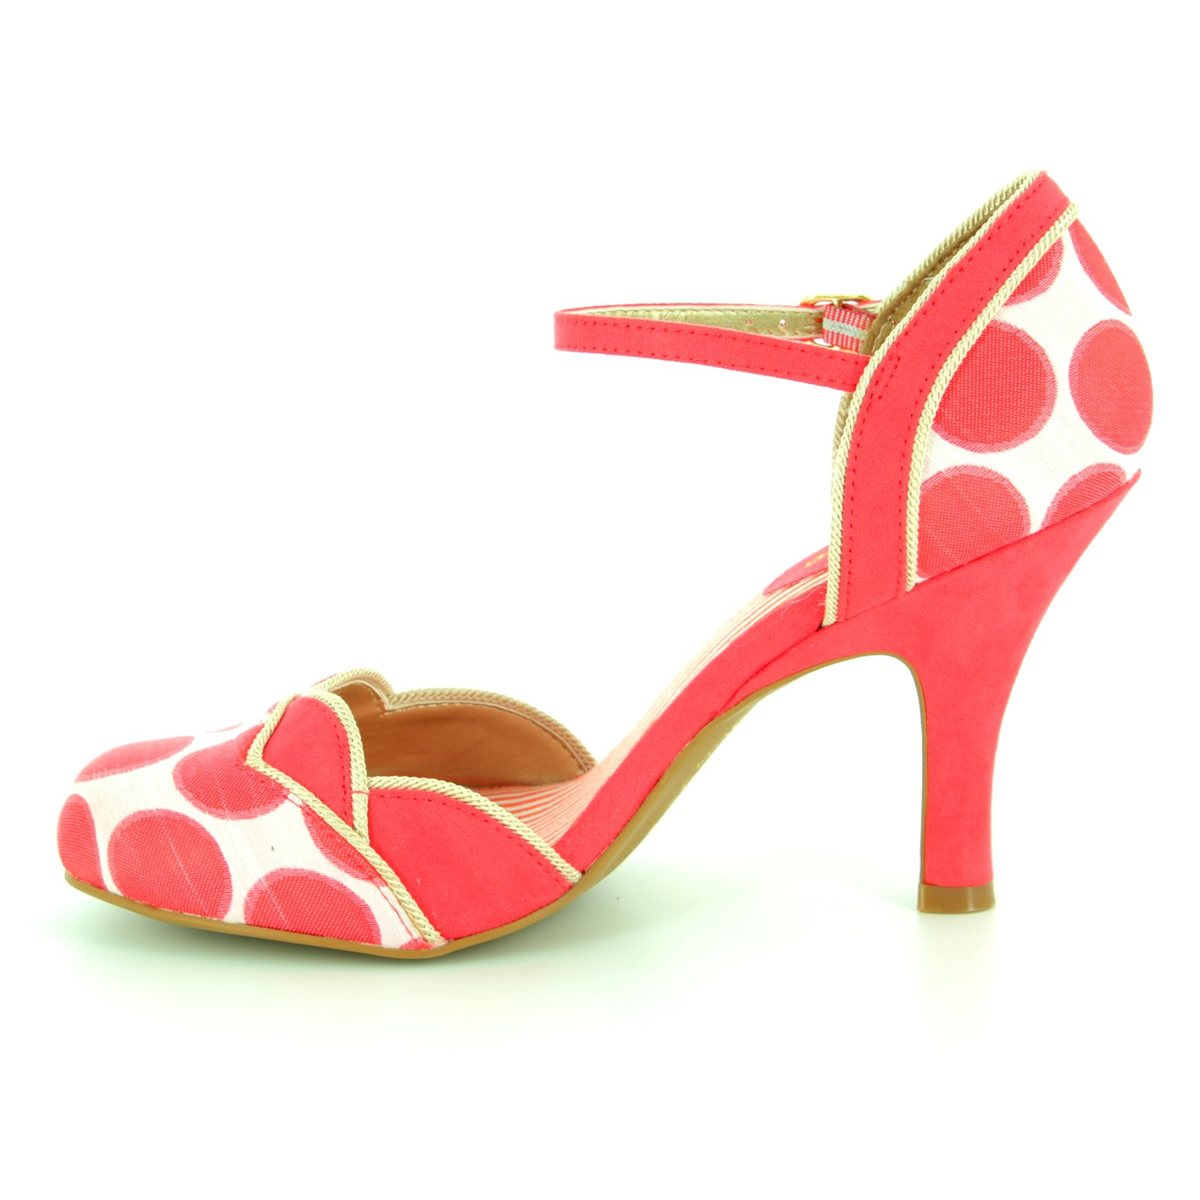 9fb549eb4d85 Ruby Shoo Phoebe 09176-85 Coral pink high-heeled shoes